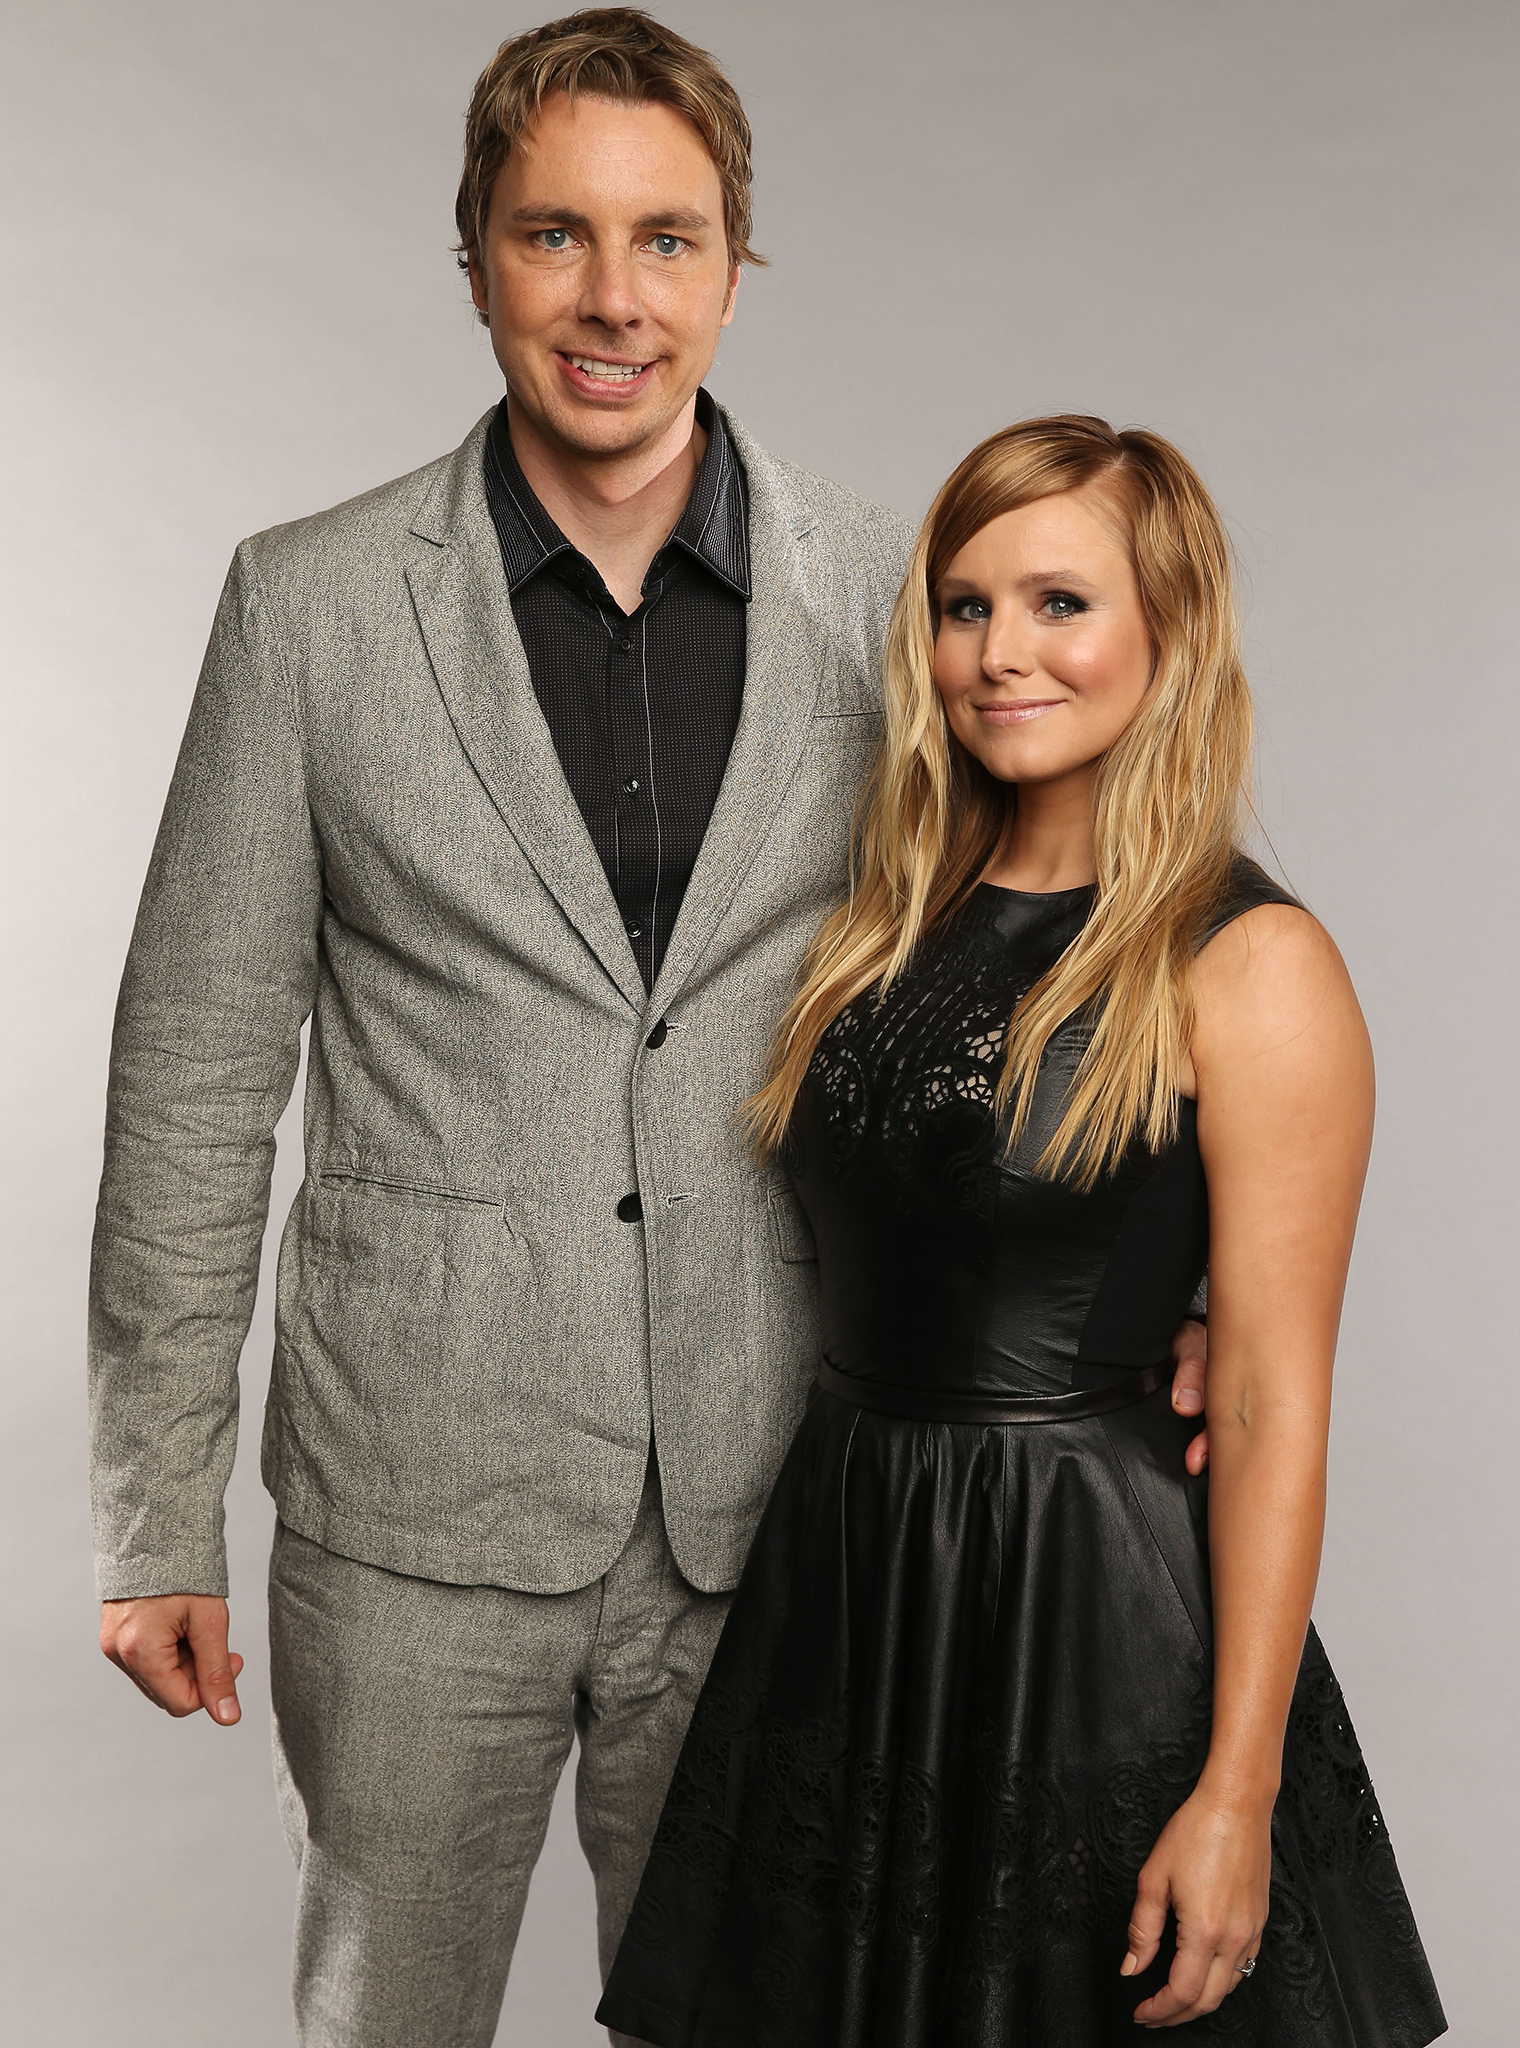 The thrifty newlyweds, Dax Shepard and Kristen Bell. (Getty Images)